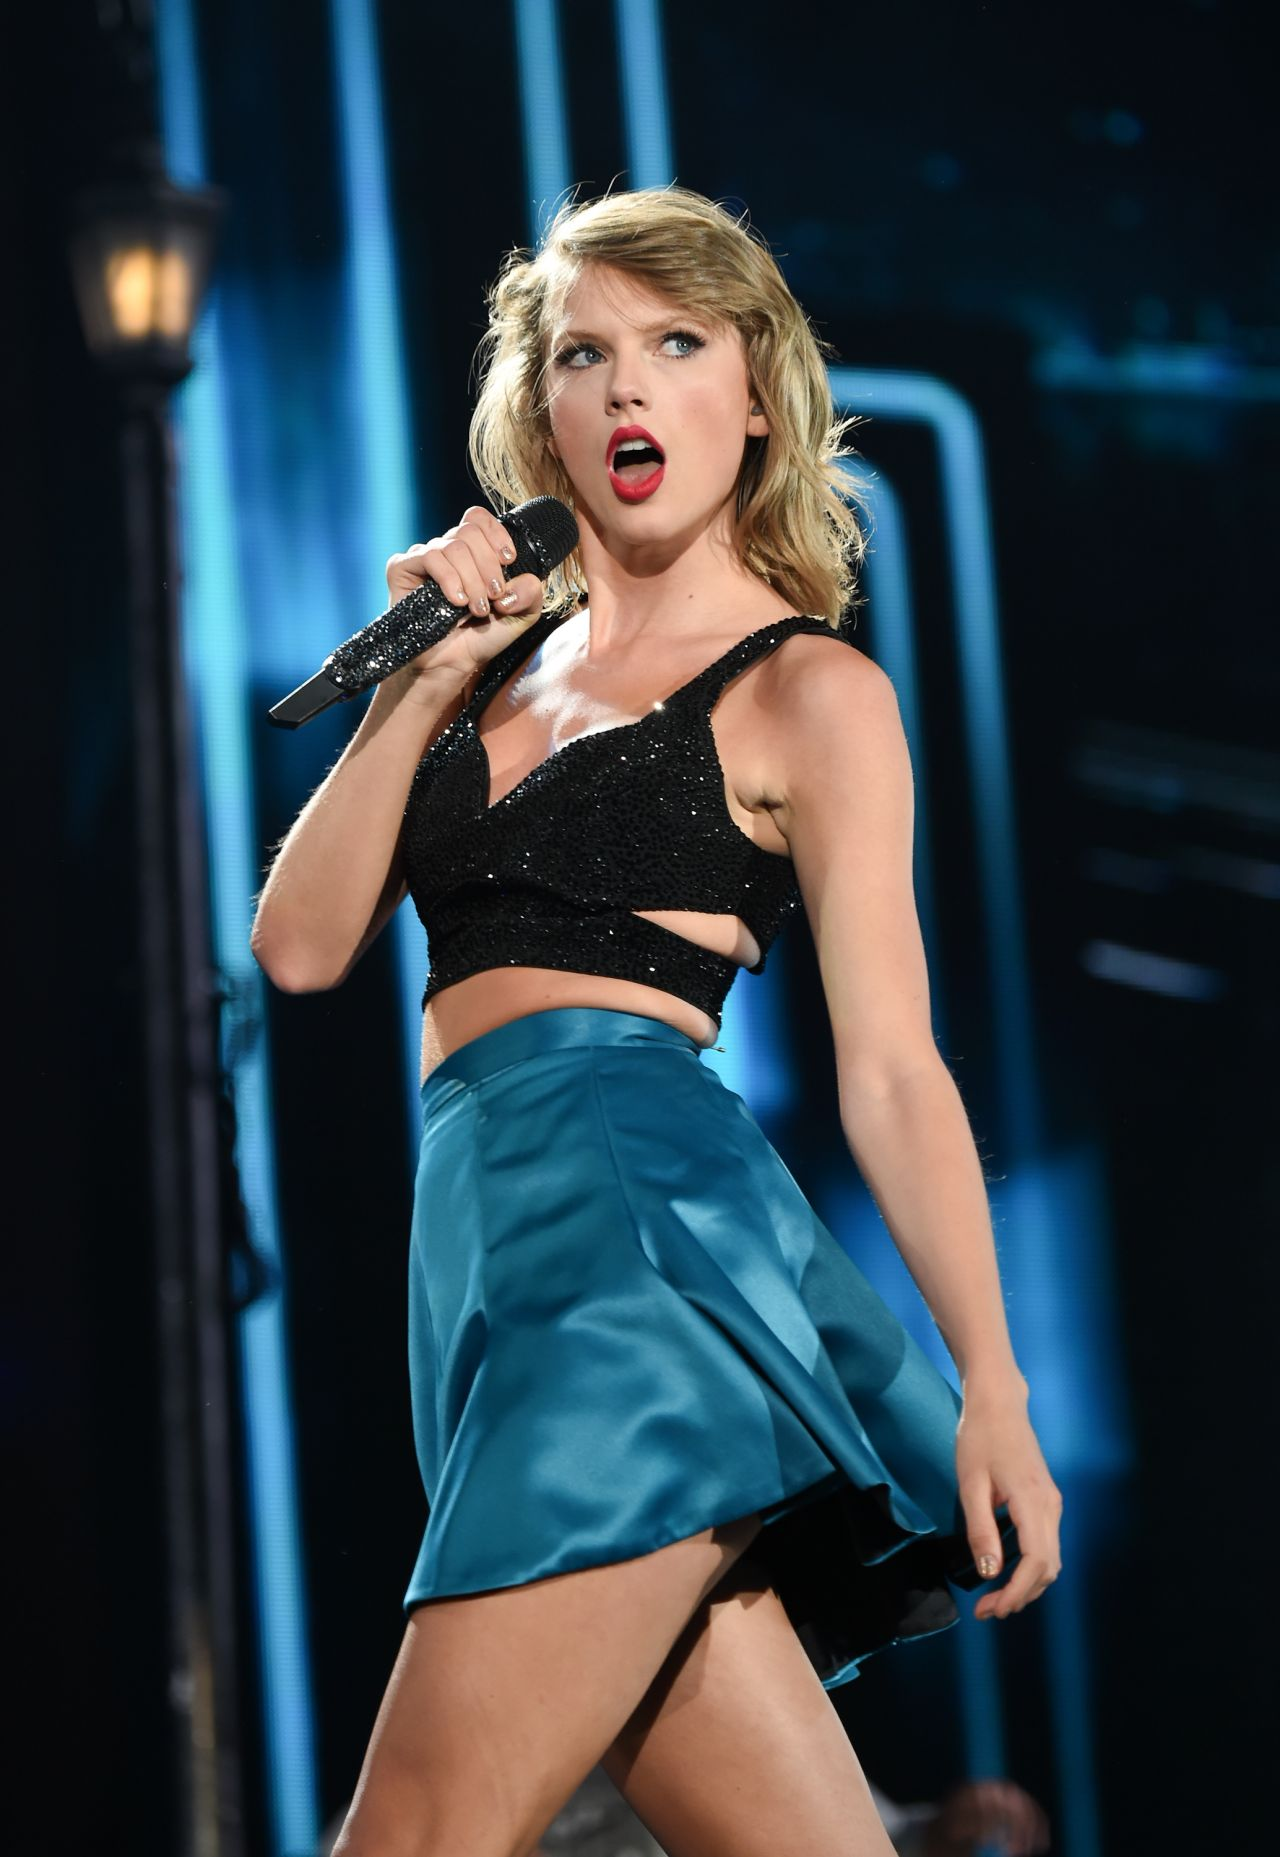 Taylor Swift - 1989 World Tour Concert In East Rutherford -4113